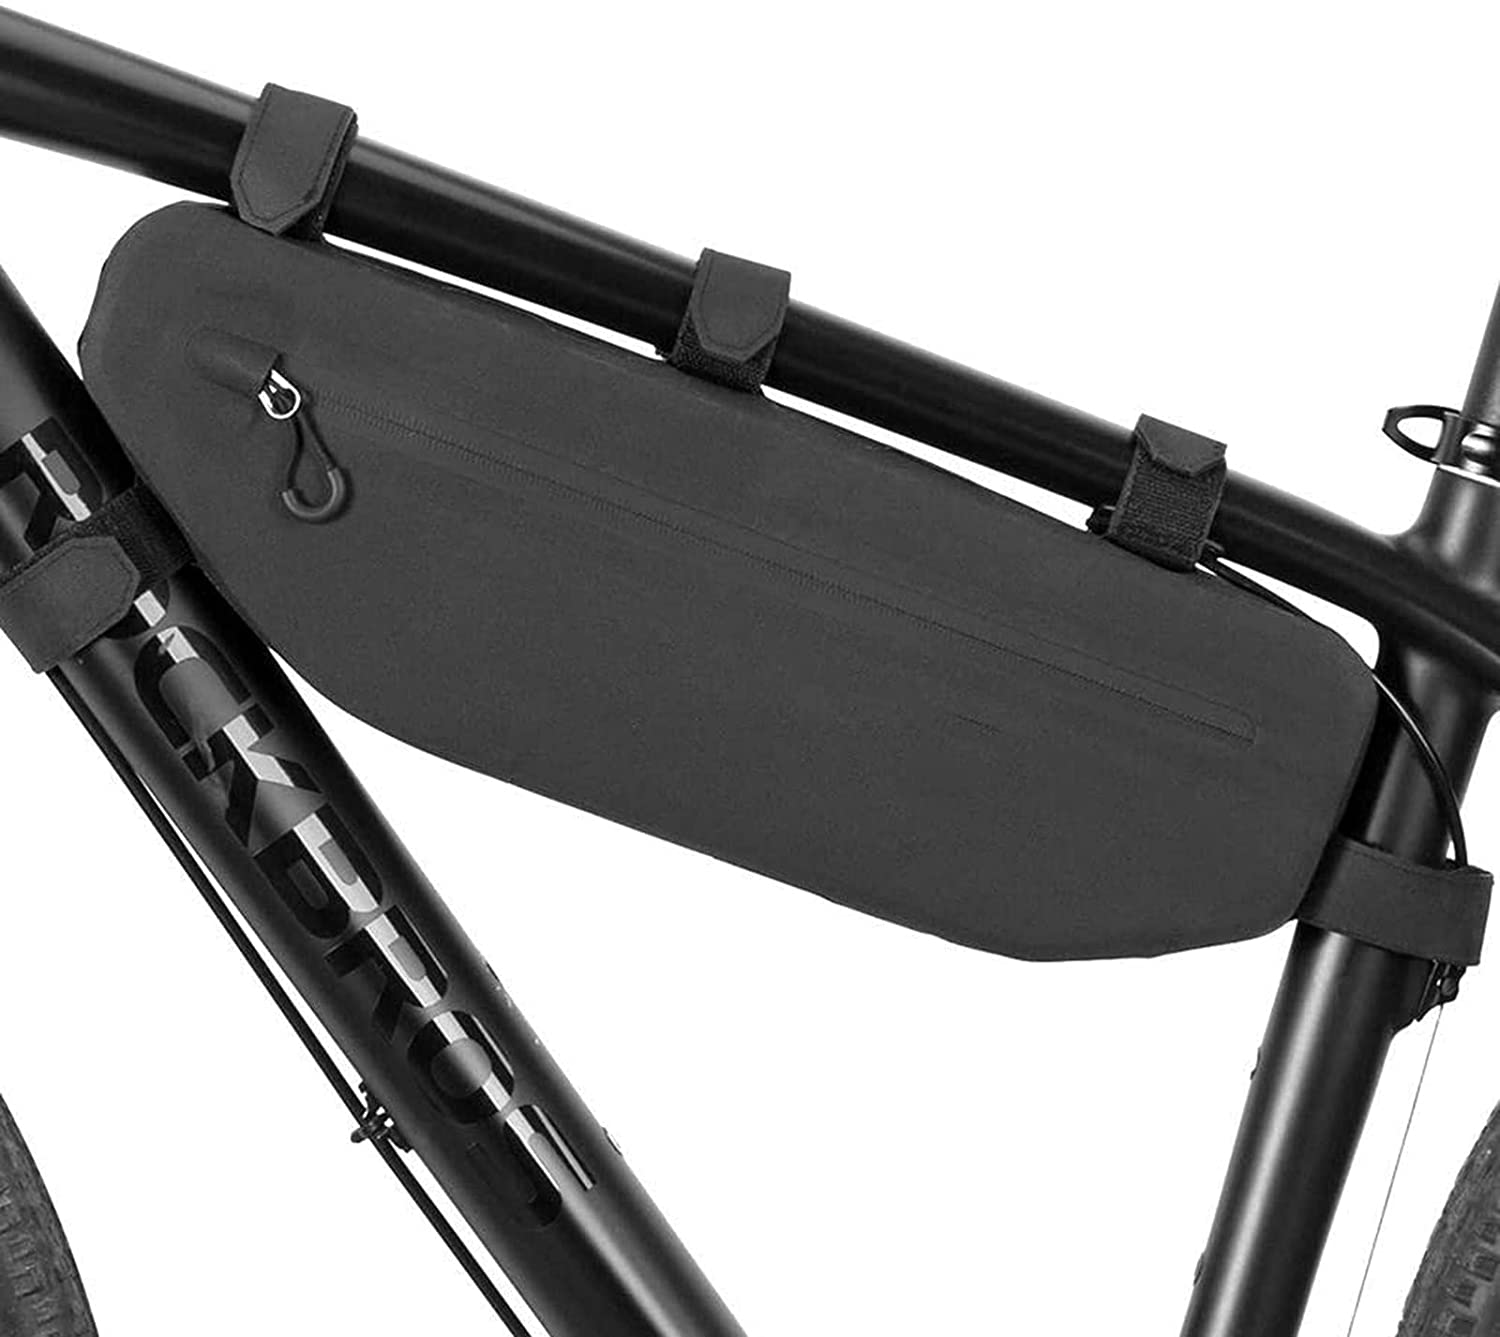 HSTG Bike Frame Bag Waterproof Pac Fashionable Beam Triangle Front Max 41% OFF